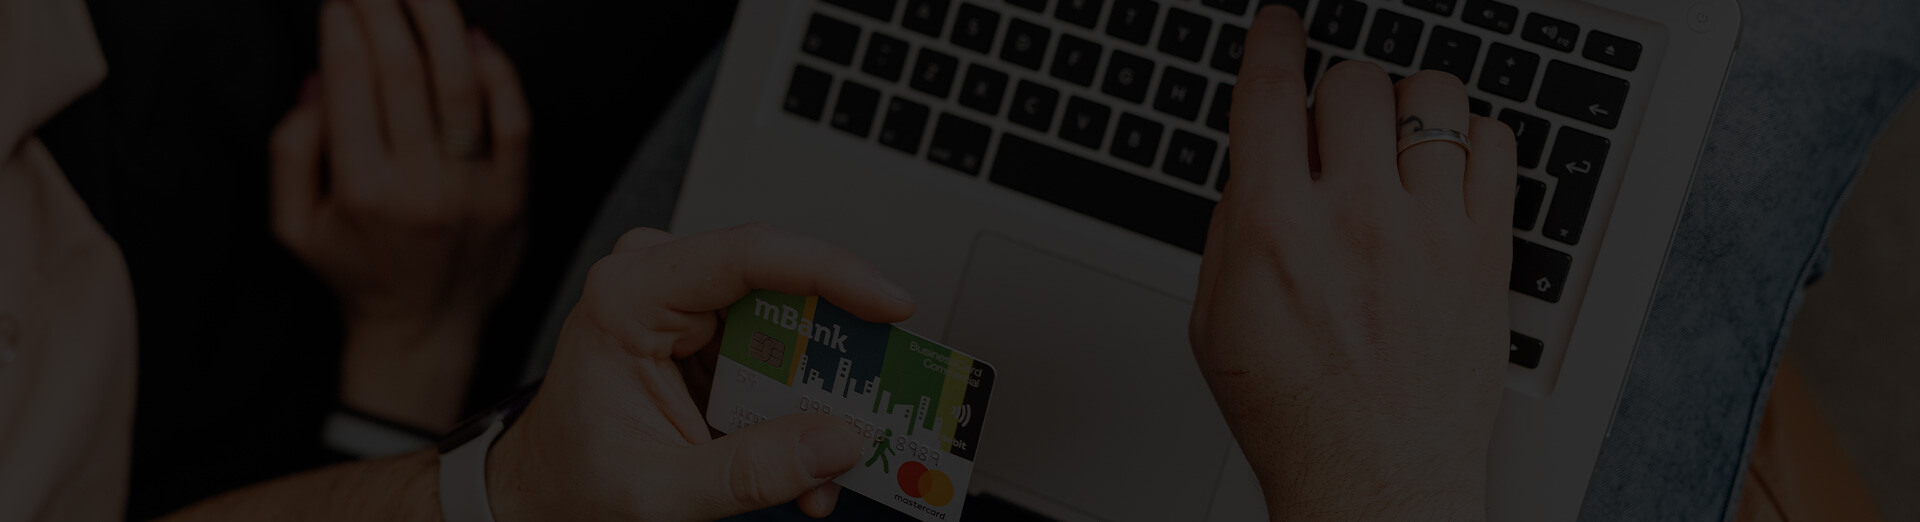 Want To Know The Cost Of An Ecommerce Website Built On WooCommerce?